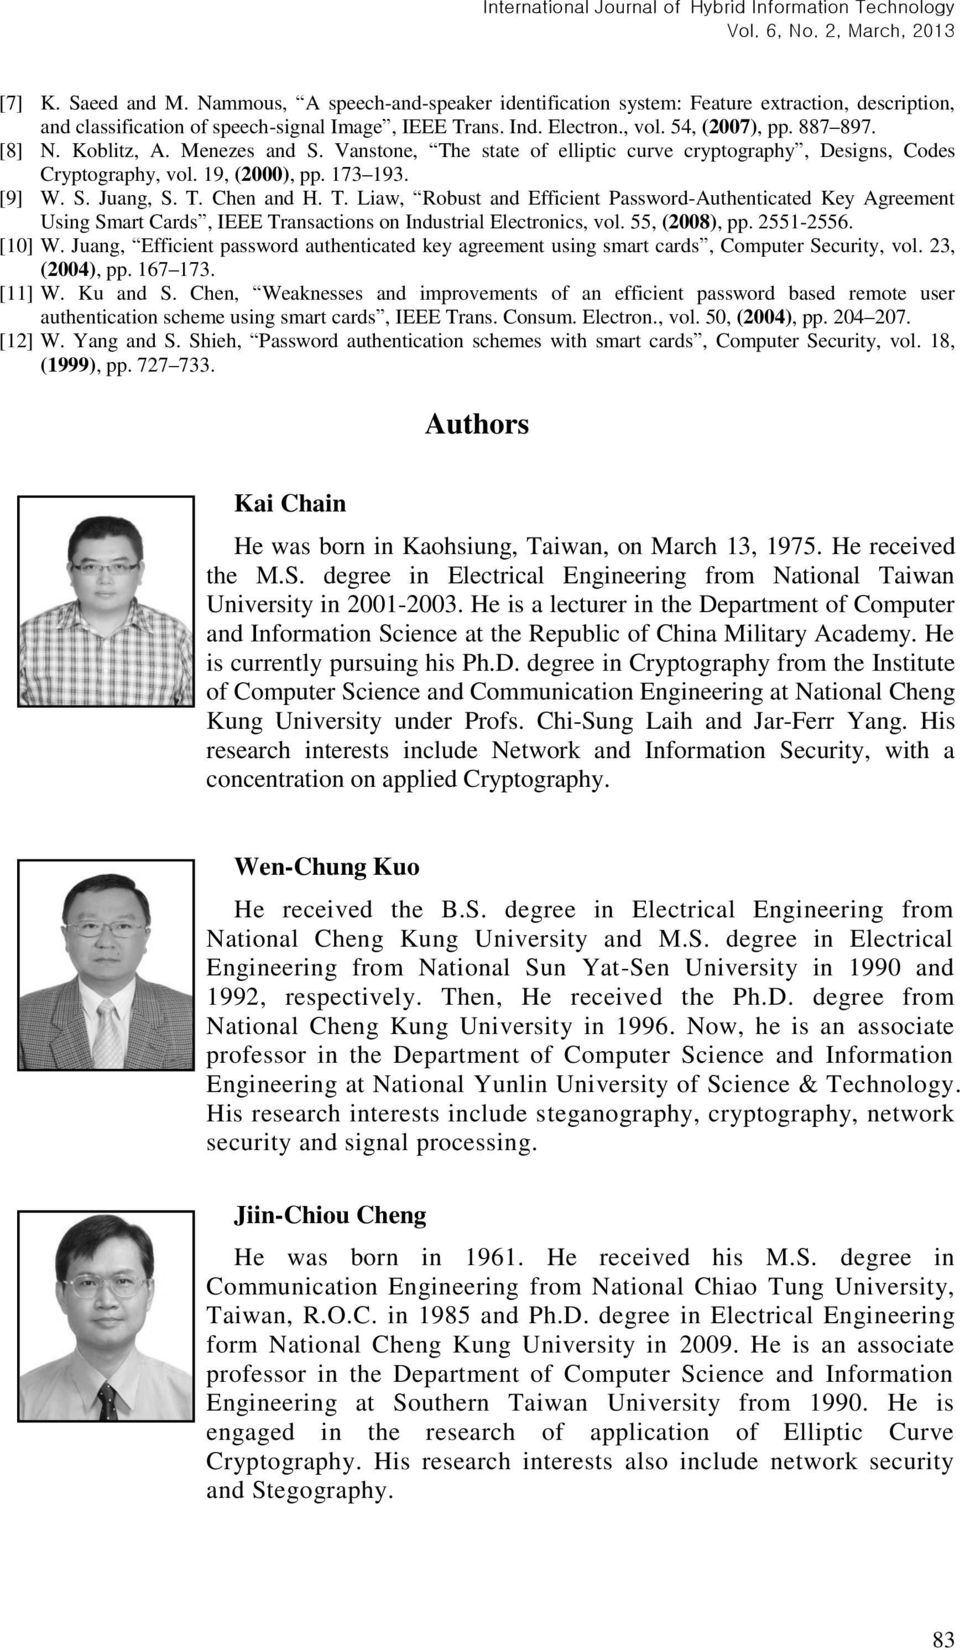 55, (2008), pp. 2551-2556. [10] W. Juang, Effcent password authentcated key agreement usng smart cards, Computer Securty, vol. 23, (2004), pp. 167 173. [11] W. Ku and S.